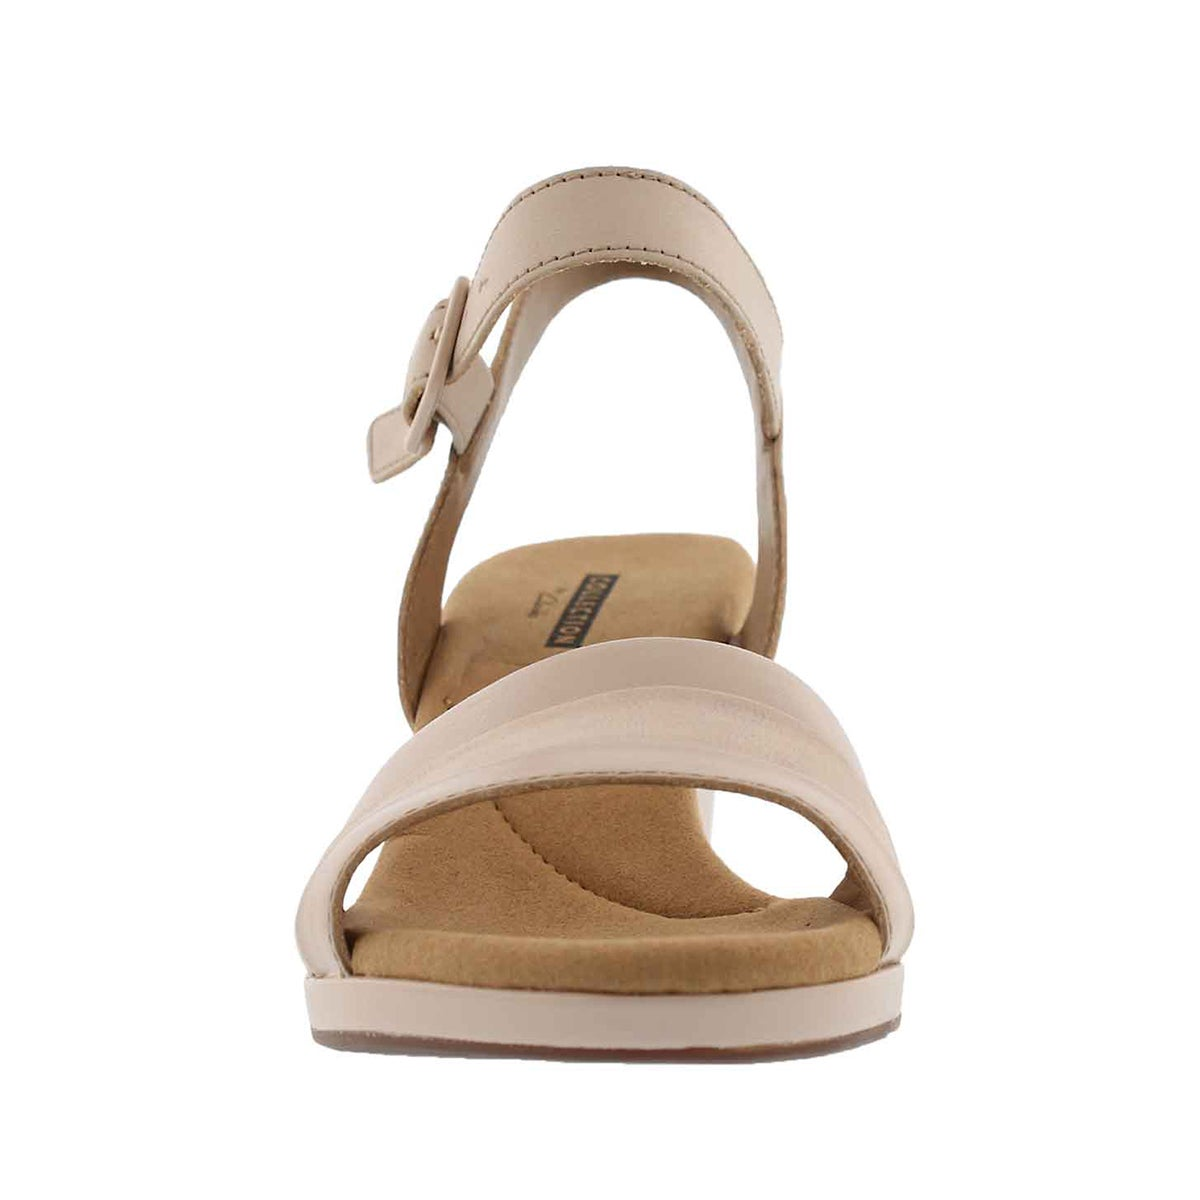 Lds Lafely Aletha dusty pnk wedge sandal